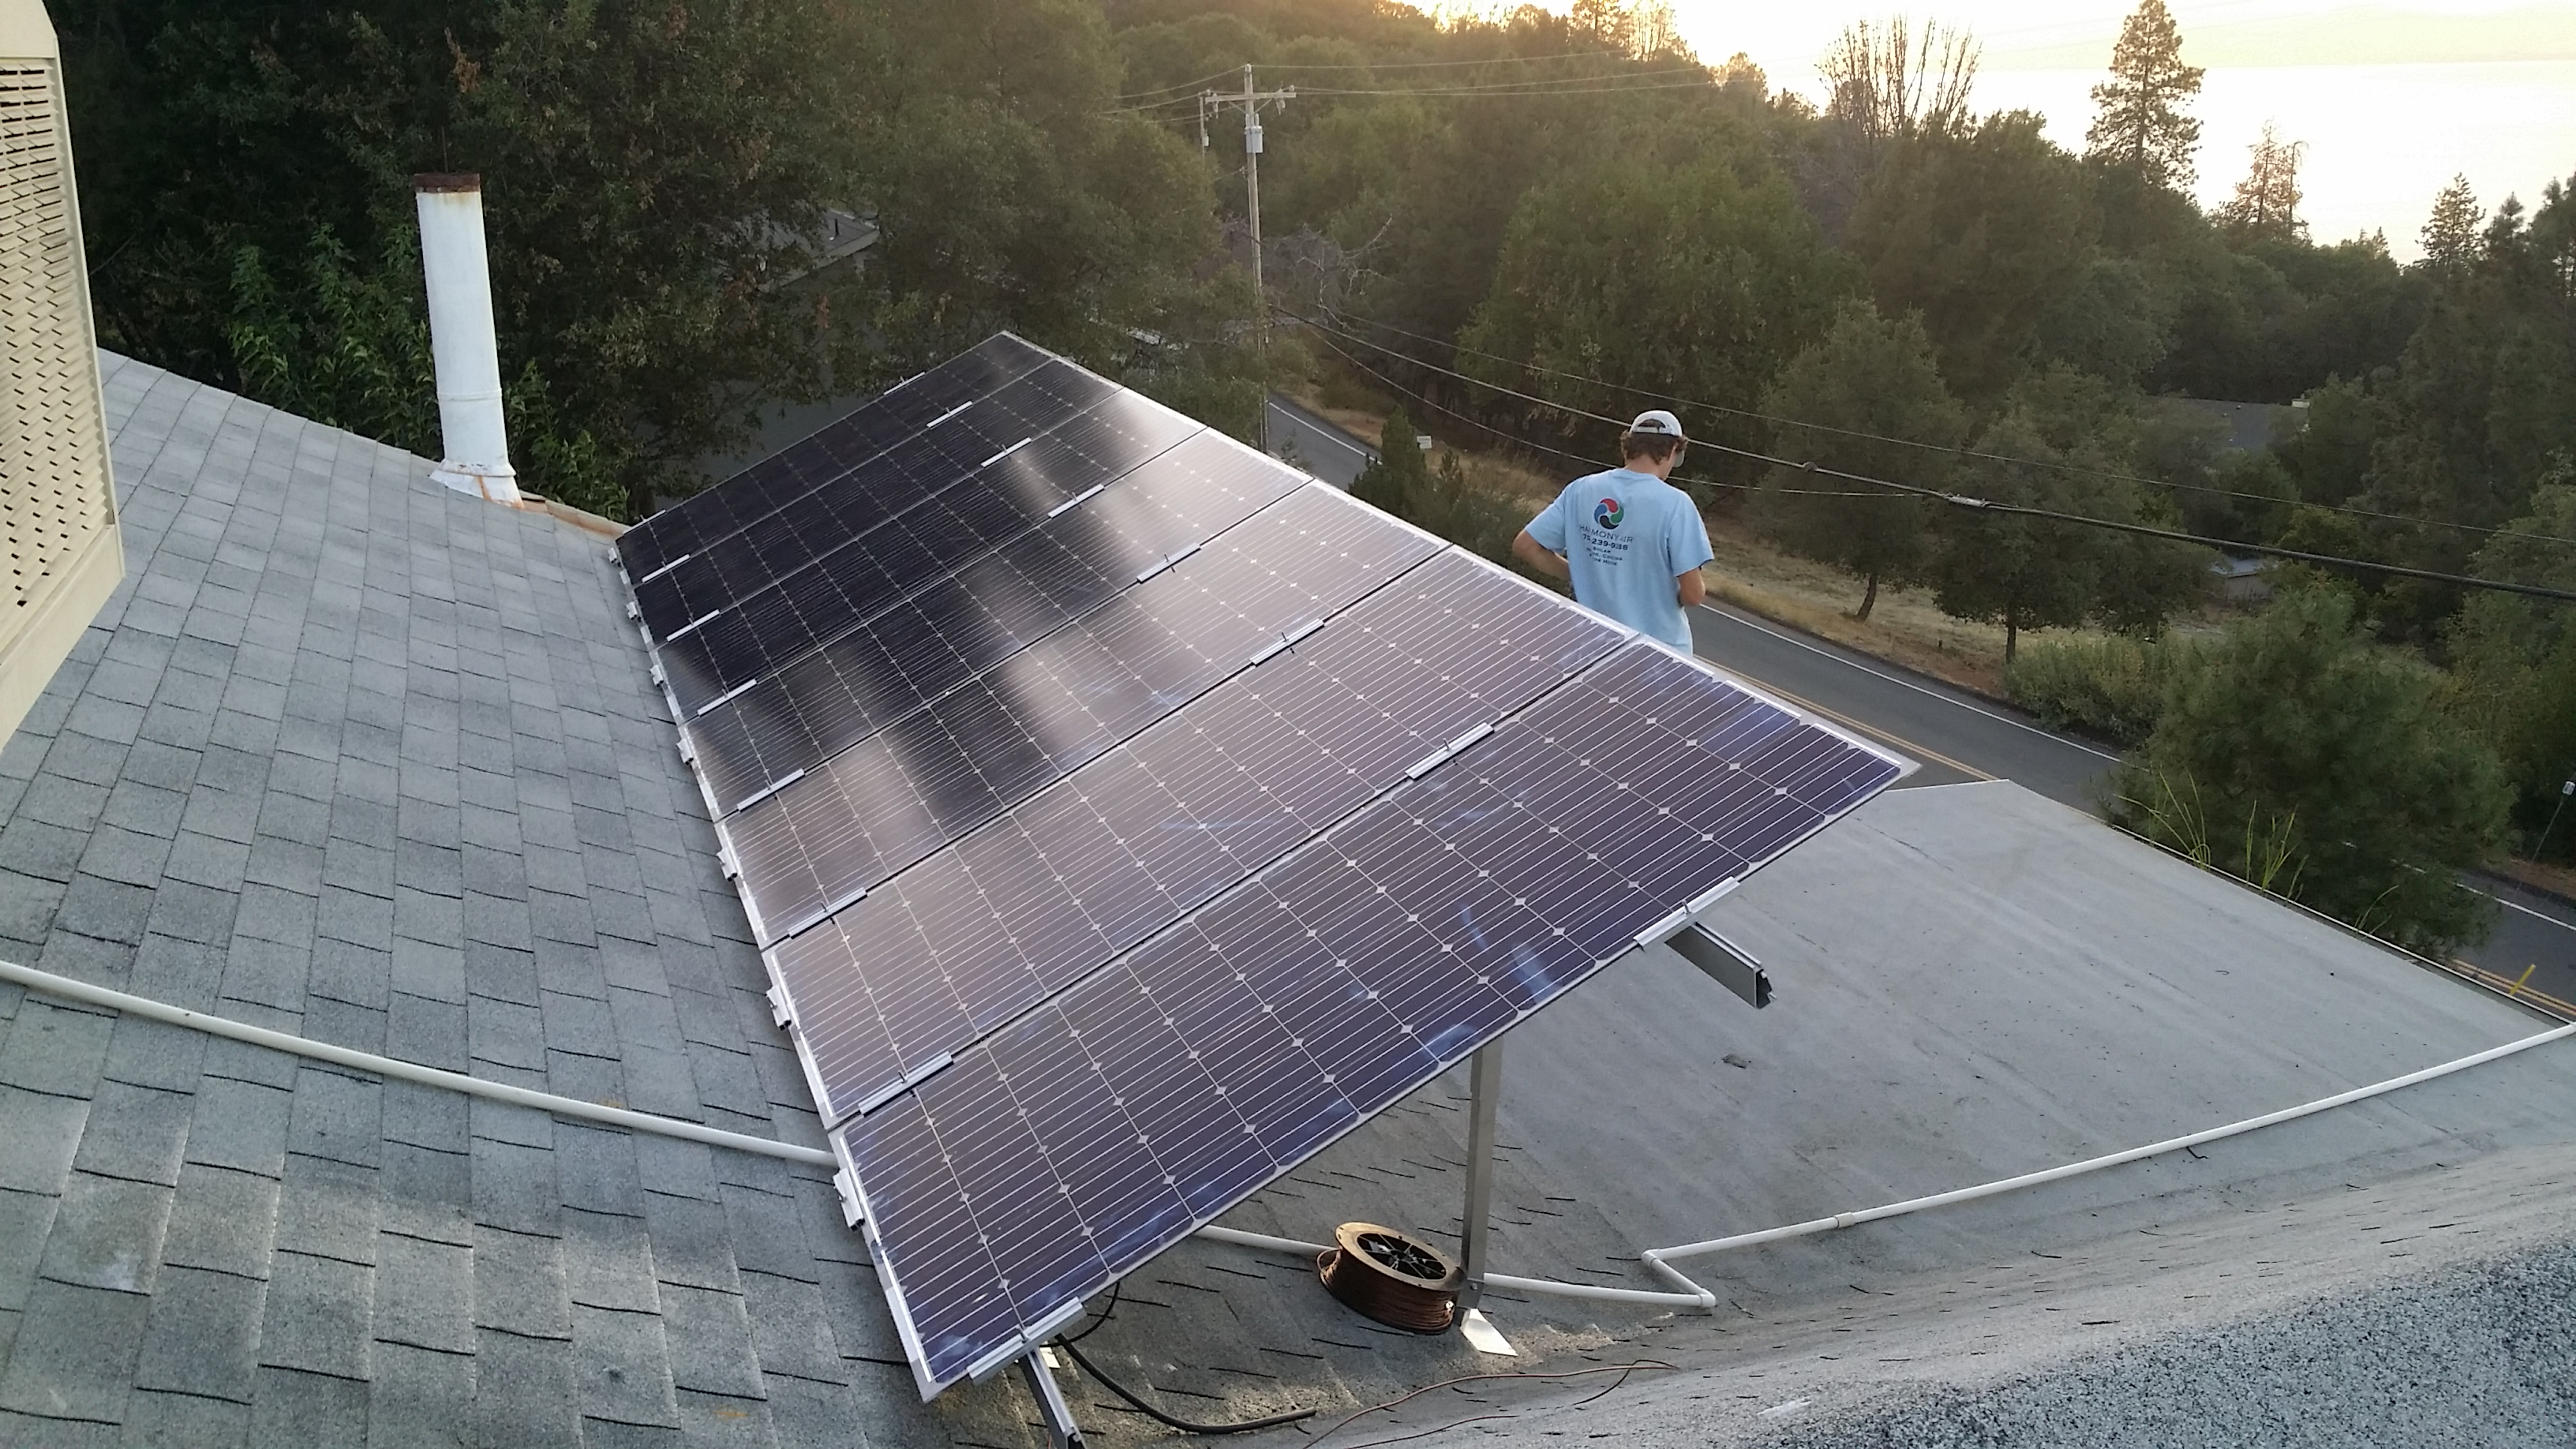 Solar Installation Harmony Air Wiring Panels To The Grid Are You Looking Reduce Your Energy Footprint Through Installing At Home Or Business Specializes In Affordable Tie